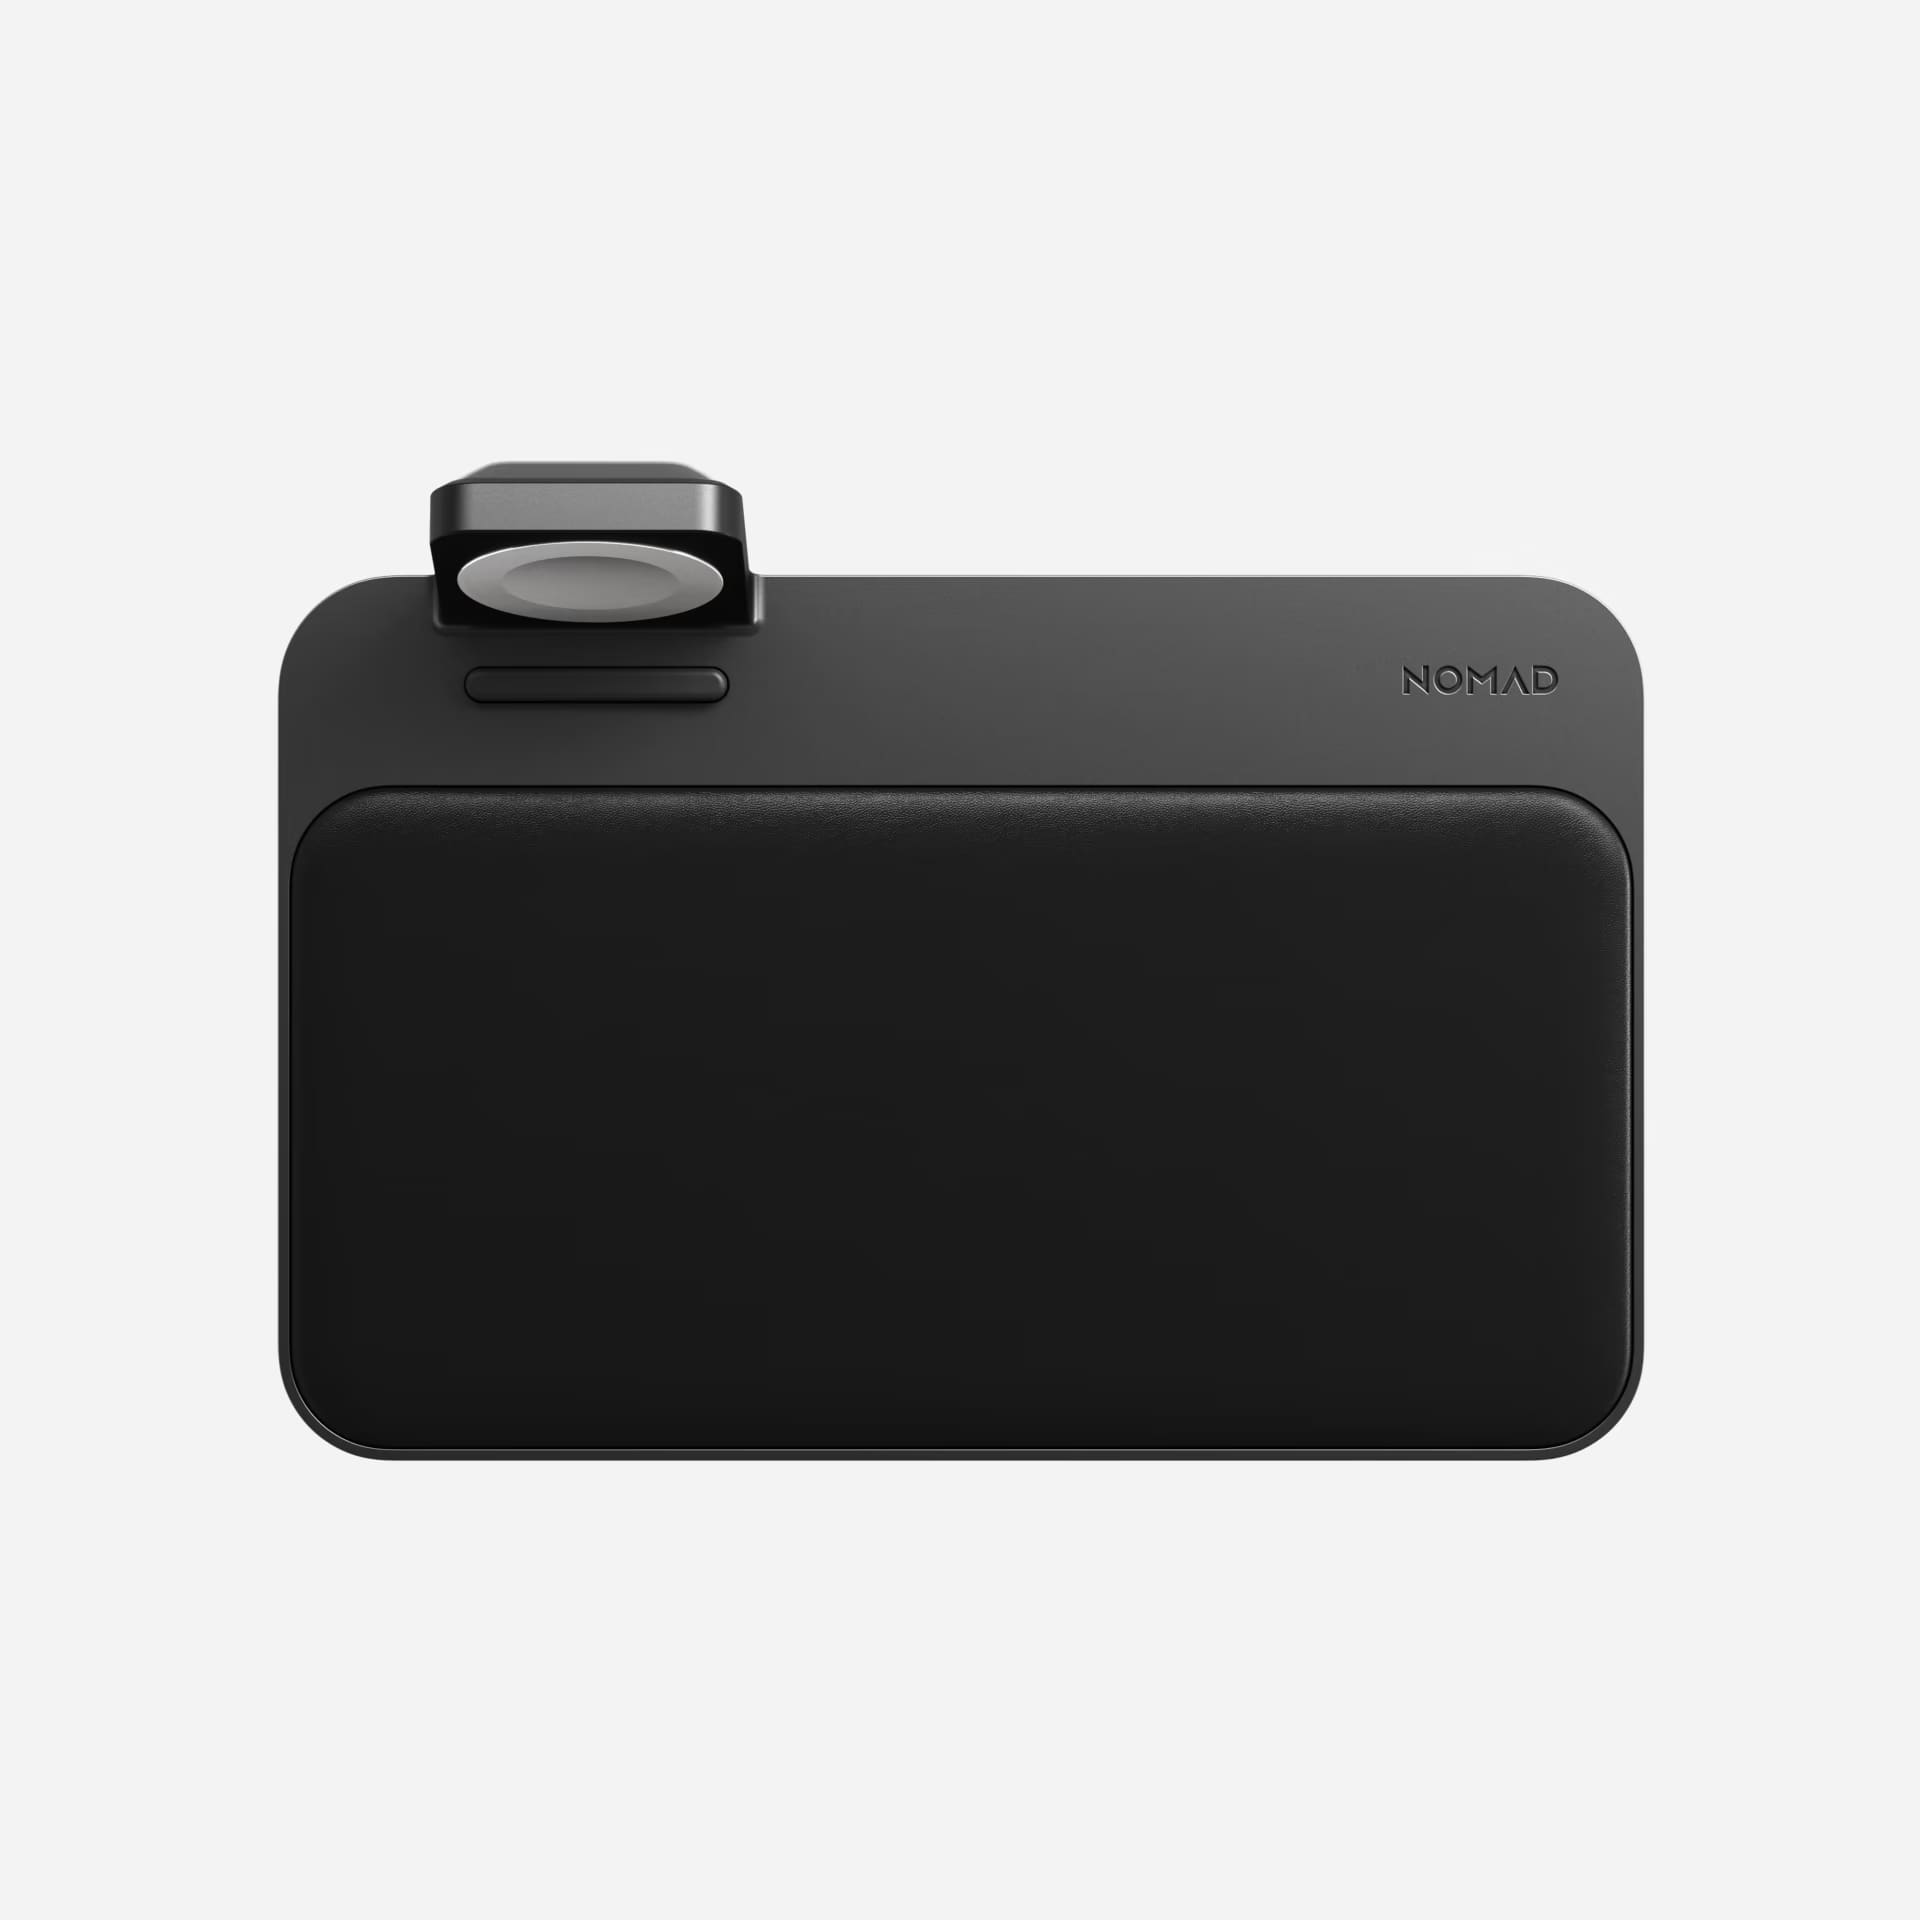 30% Off Nomad Base Station Apple Watch Edition + SITE WIDE SALE $104.97